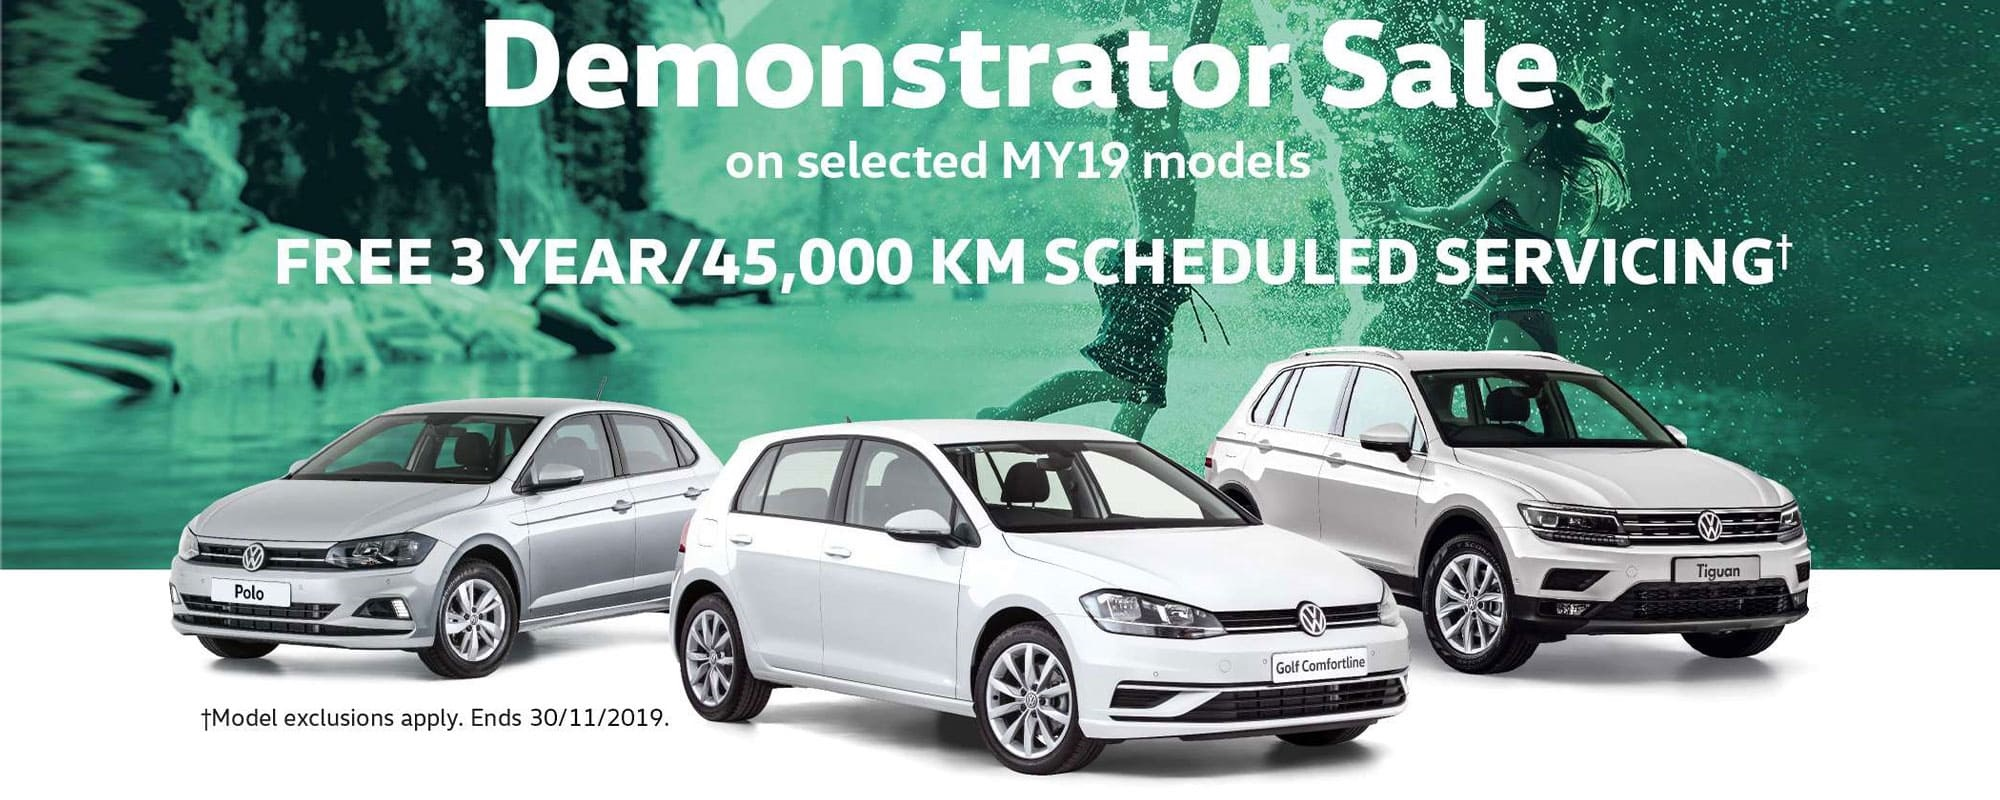 Demonstrator Sale at Dwyers Volkswagen